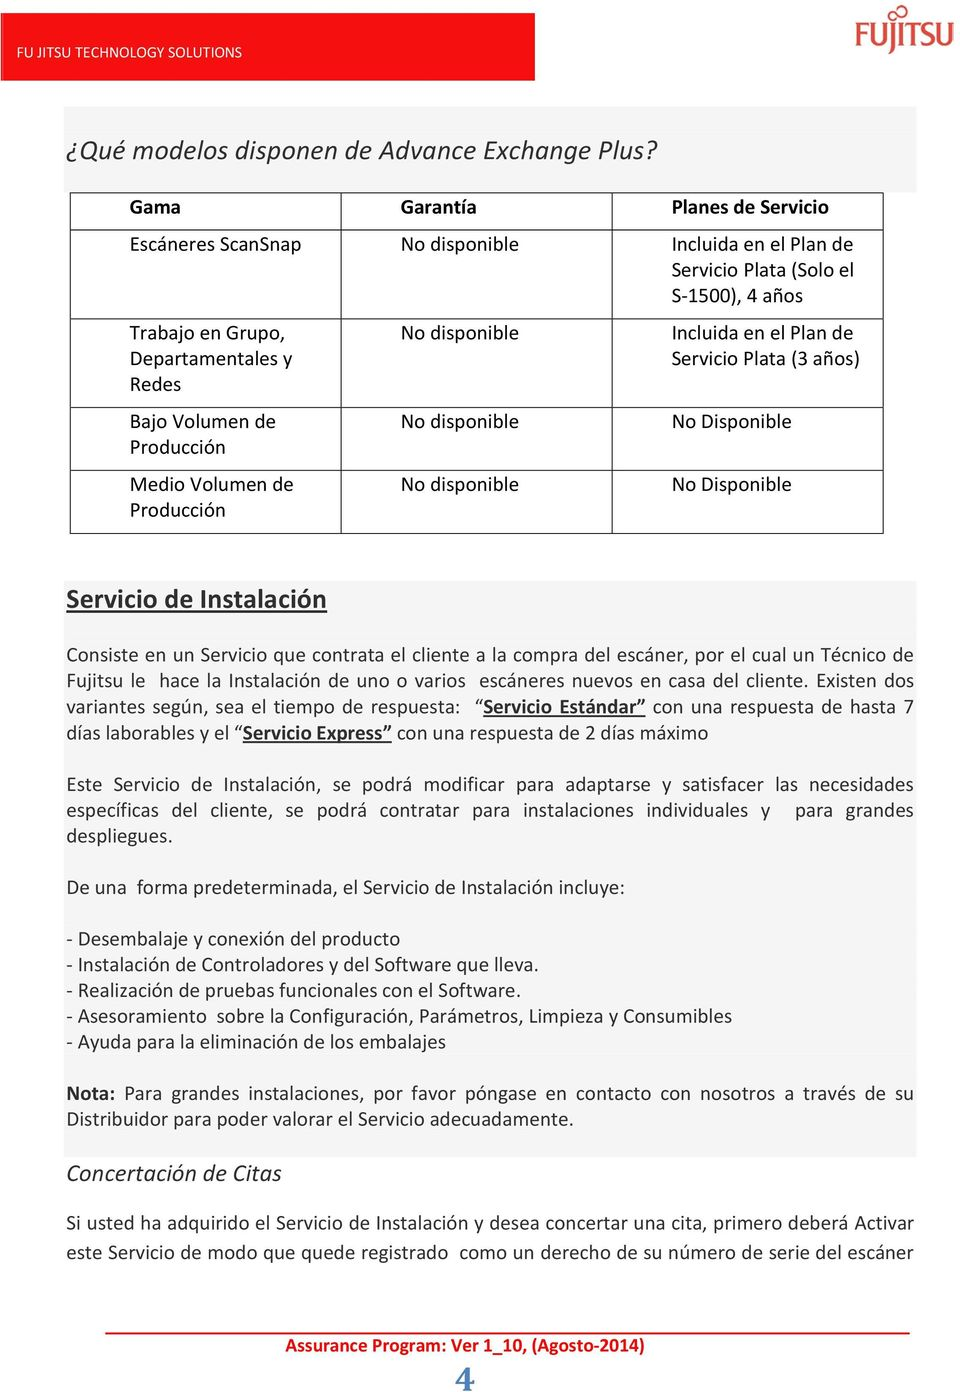 Medio Volumen de Producción No disponible No disponible No disponible Incluida en el Plan de Servicio Plata (3 años) No Disponible No Disponible Servicio de Instalación Consiste en un Servicio que